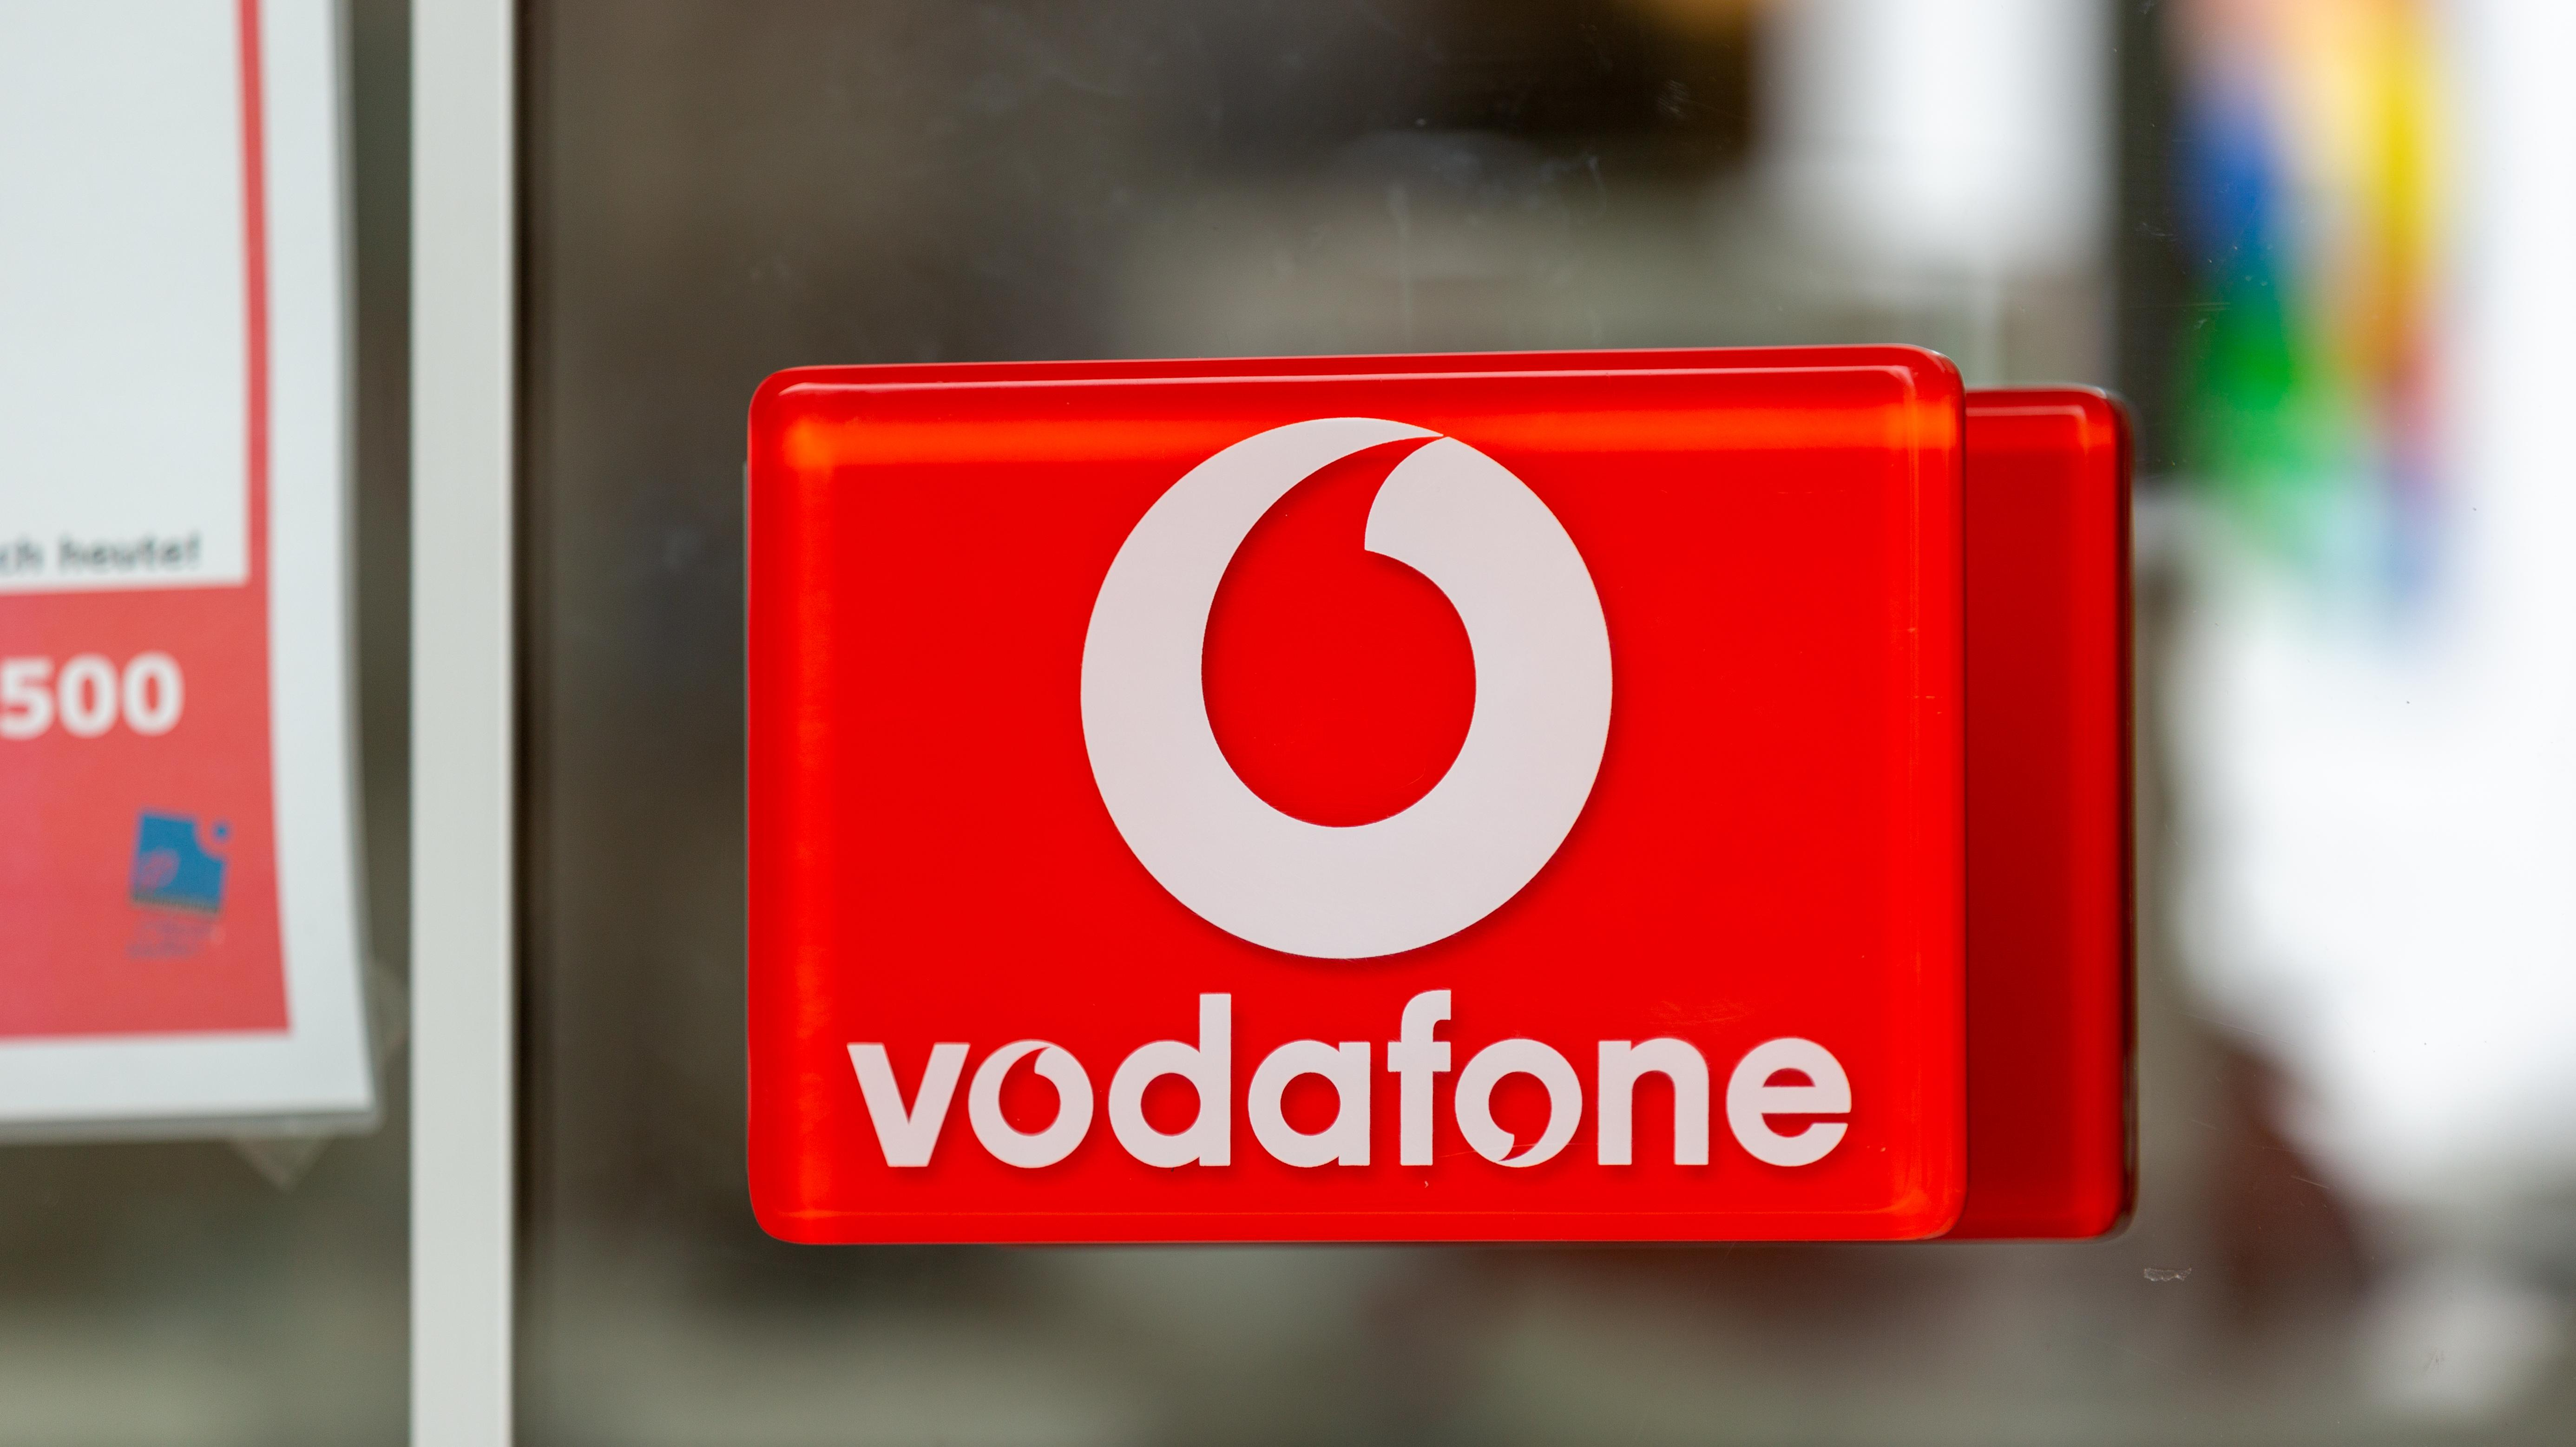 How To Get Chat Extra On Vodafone